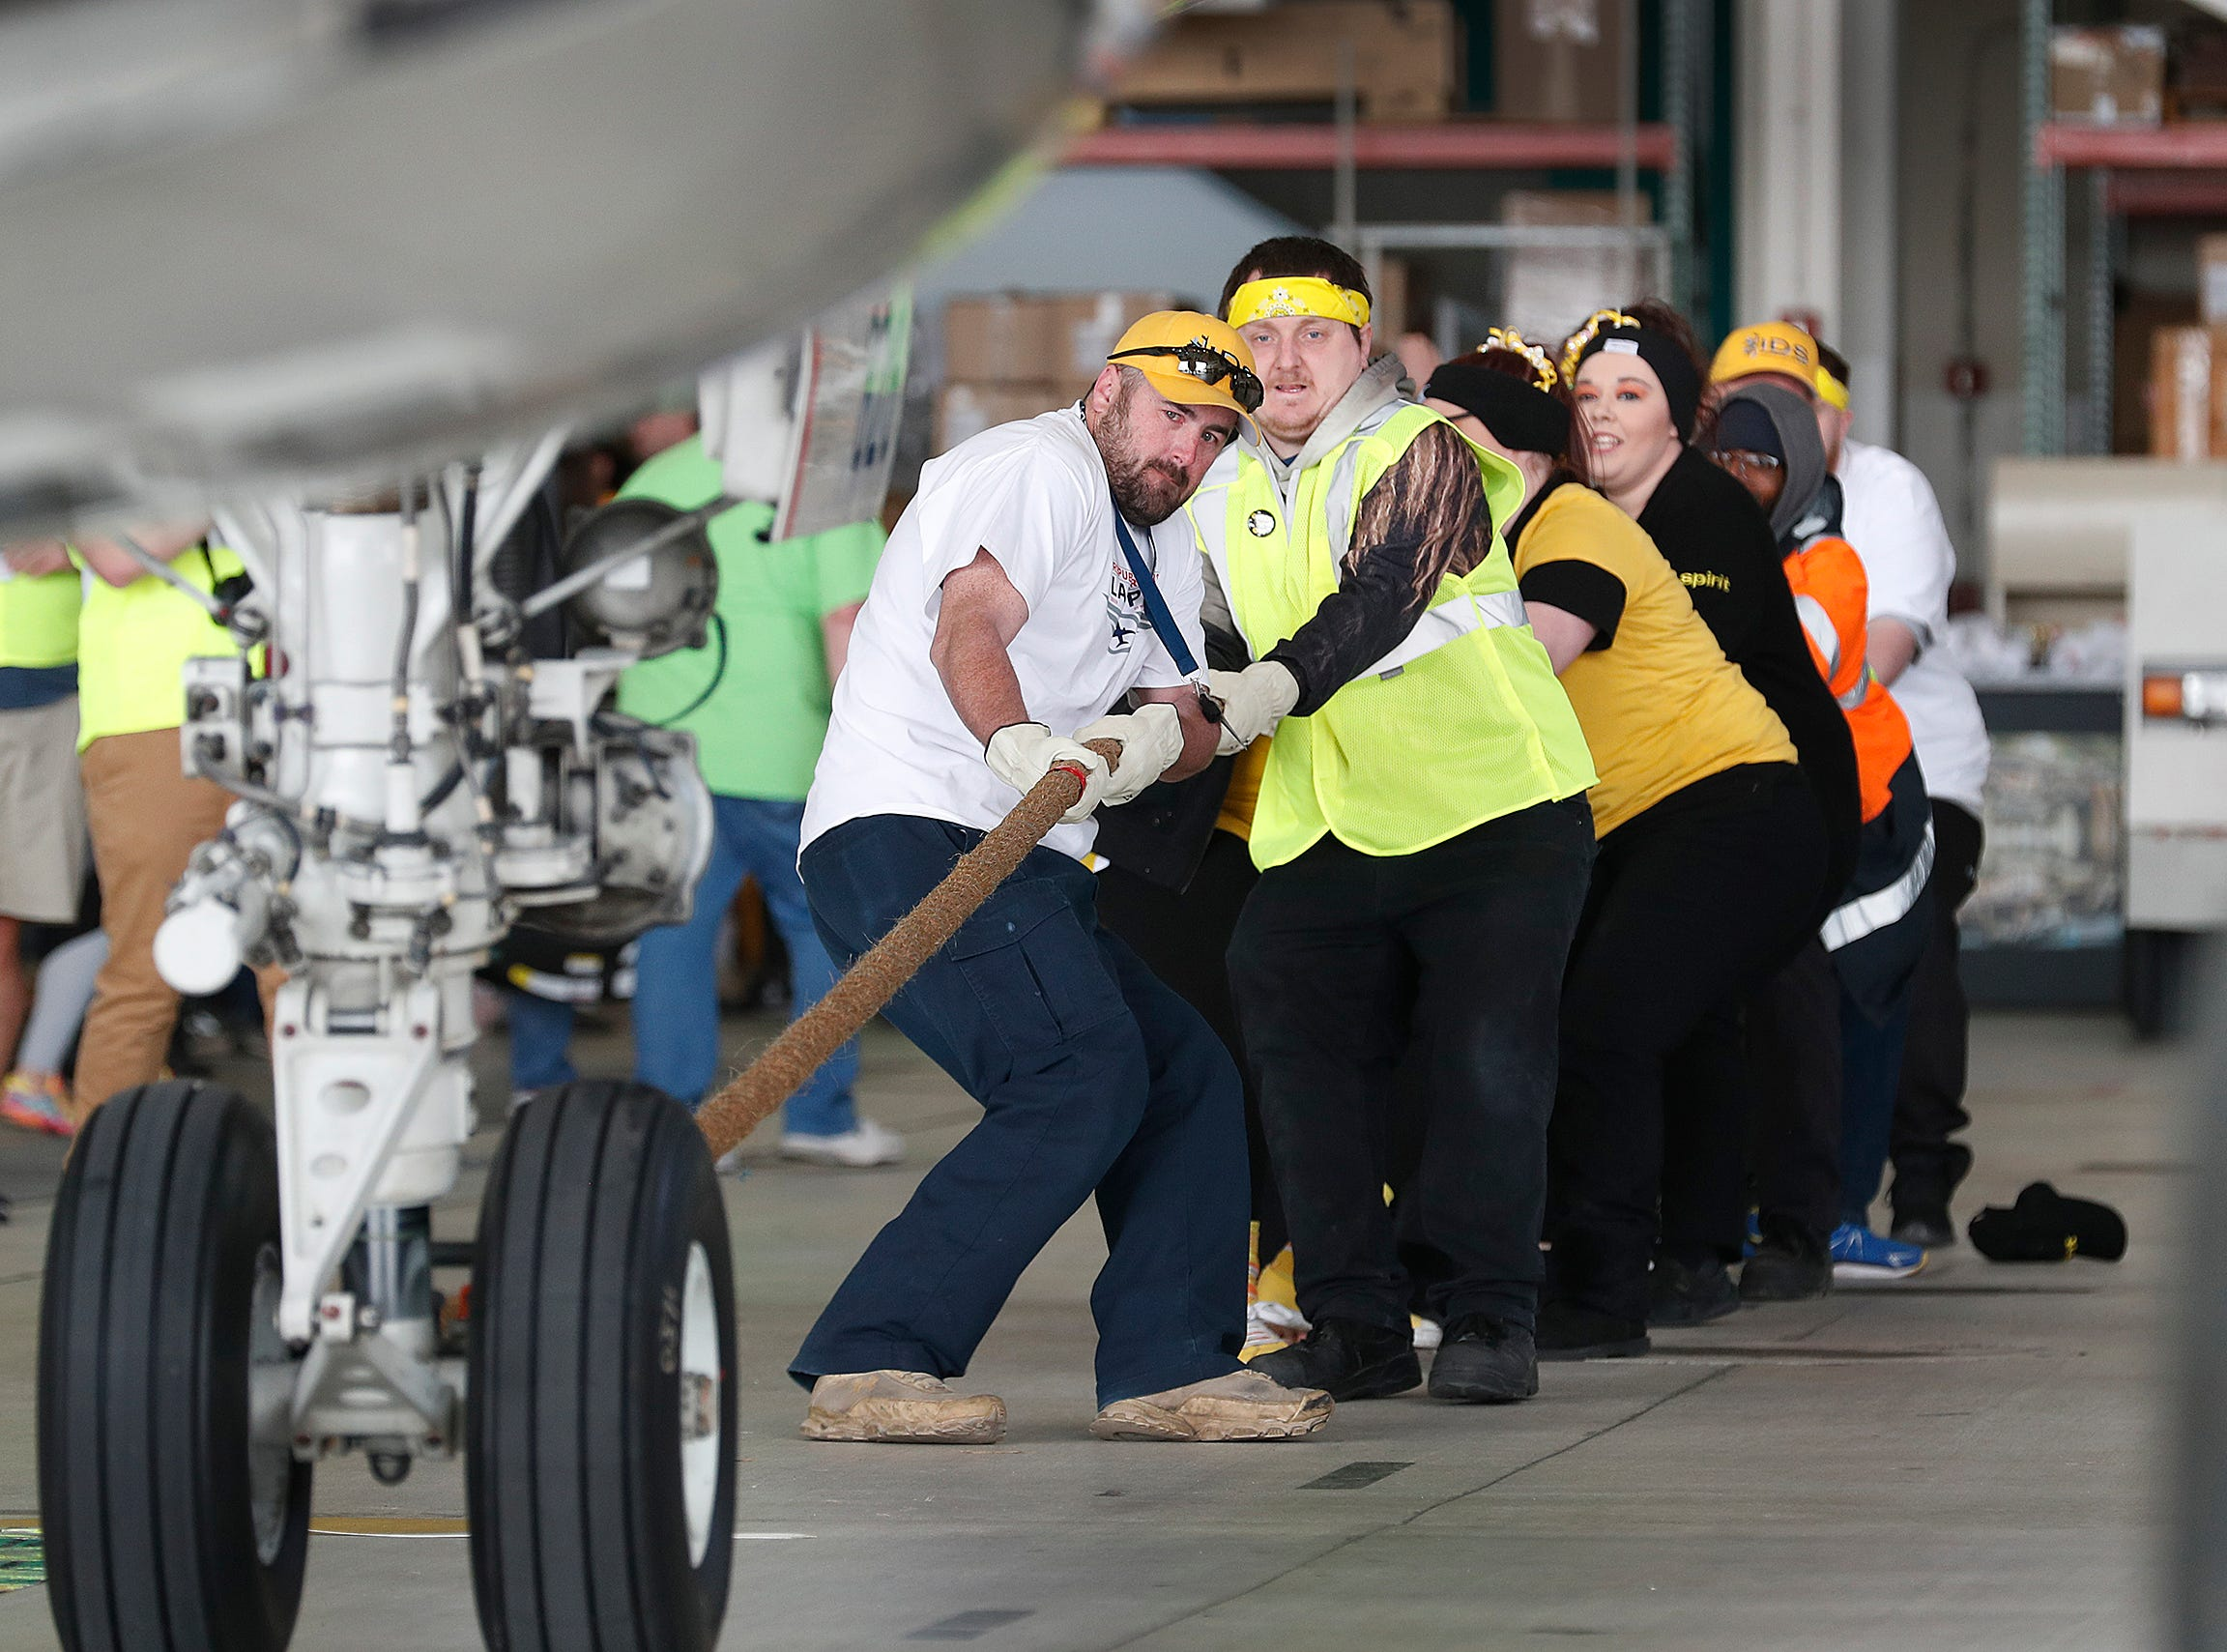 Team Spirit Airlines pulls an Embraer 170/175 aircraft 15 feet  during the 9th Annual Republic Airways Plane Pull at the Republic Airways Hanger at the Indianapolis International Airport on Saturday, April 13, 2019.